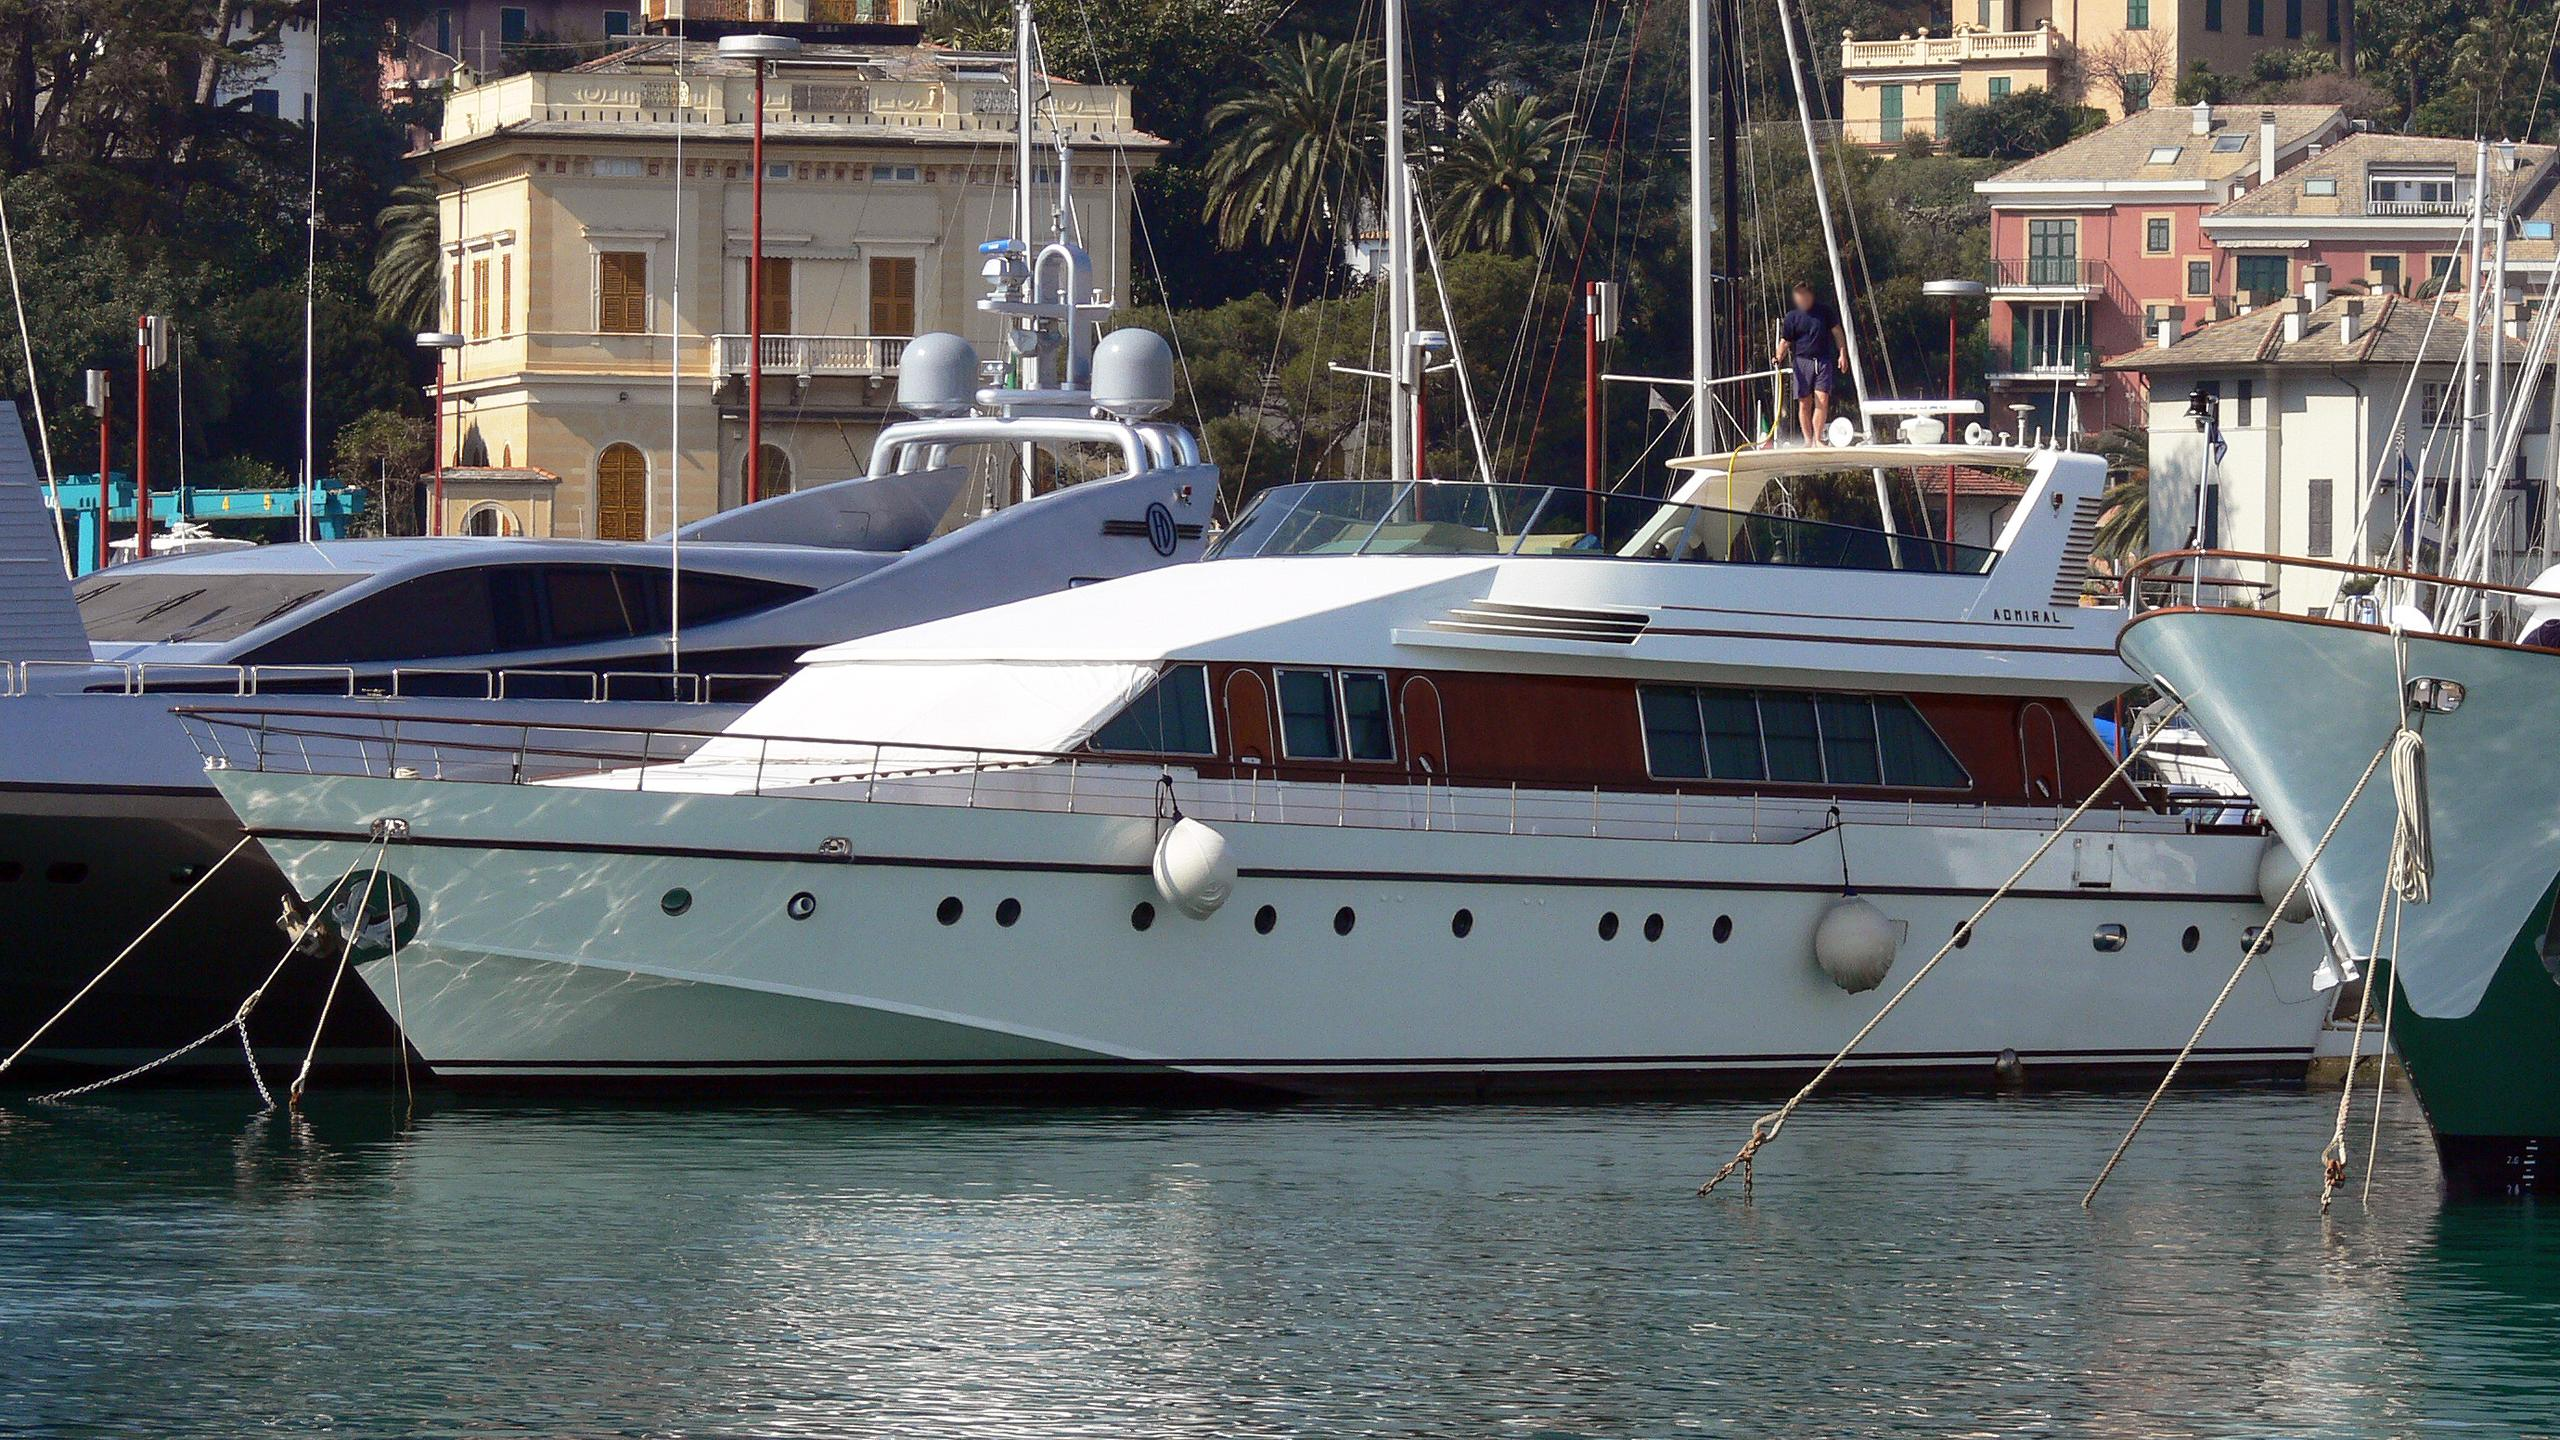 milady-motor-yacht-cnl-admiral-27m-1979-profile